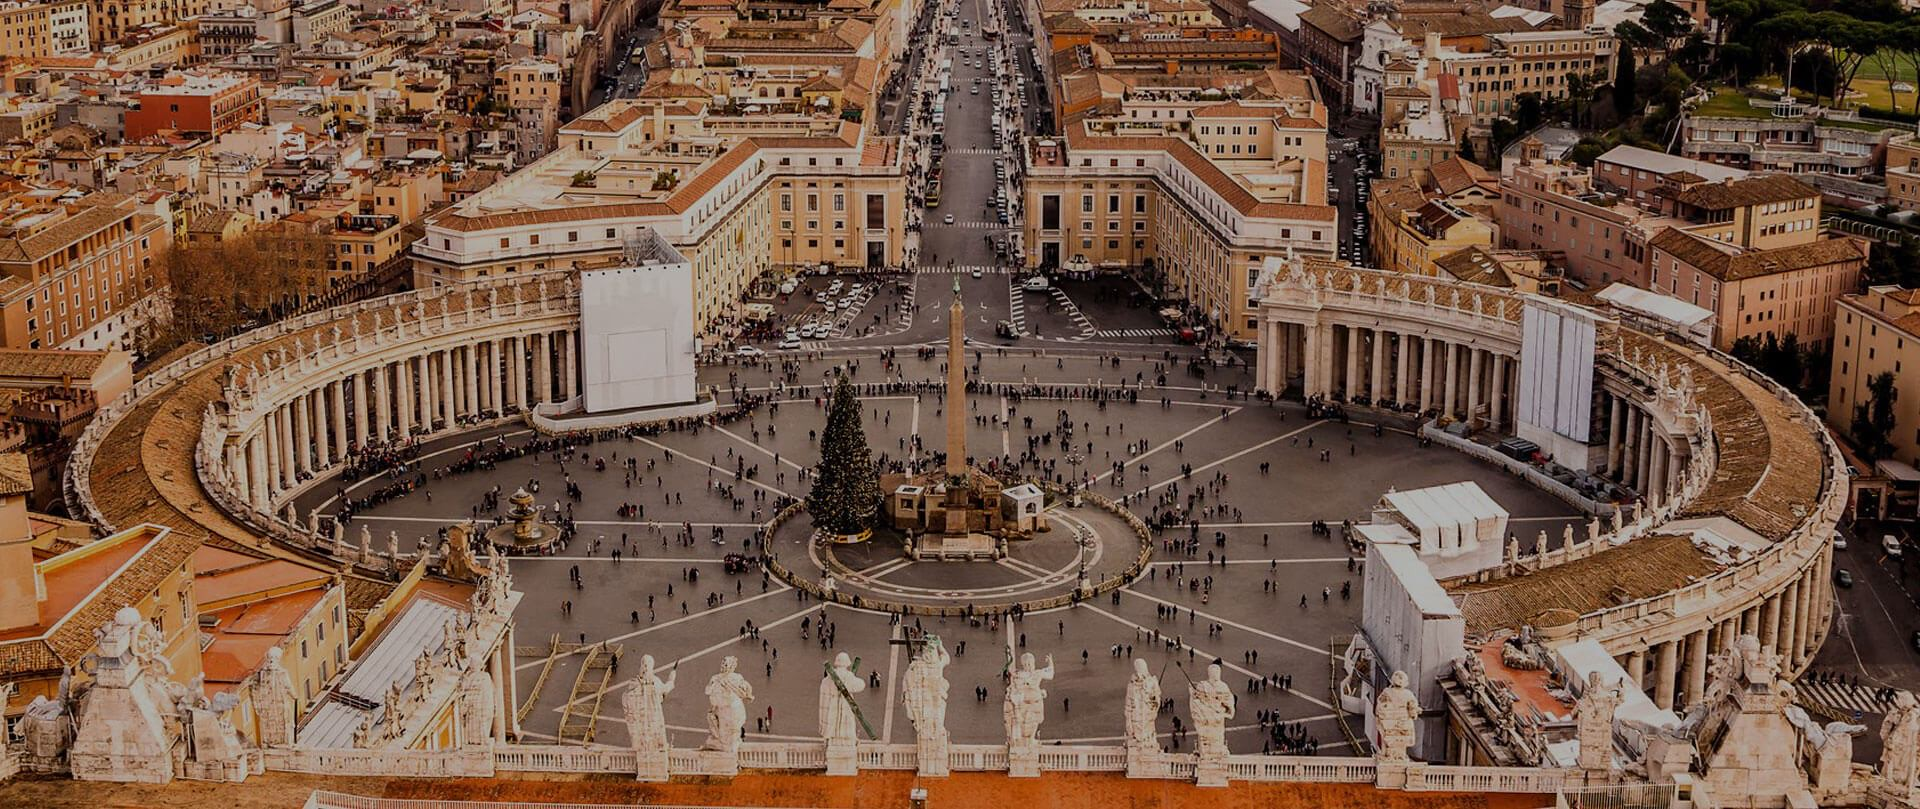 A view of the St. Peter's Basilica Plaza viewed from above, looking over the statues of the Apostles